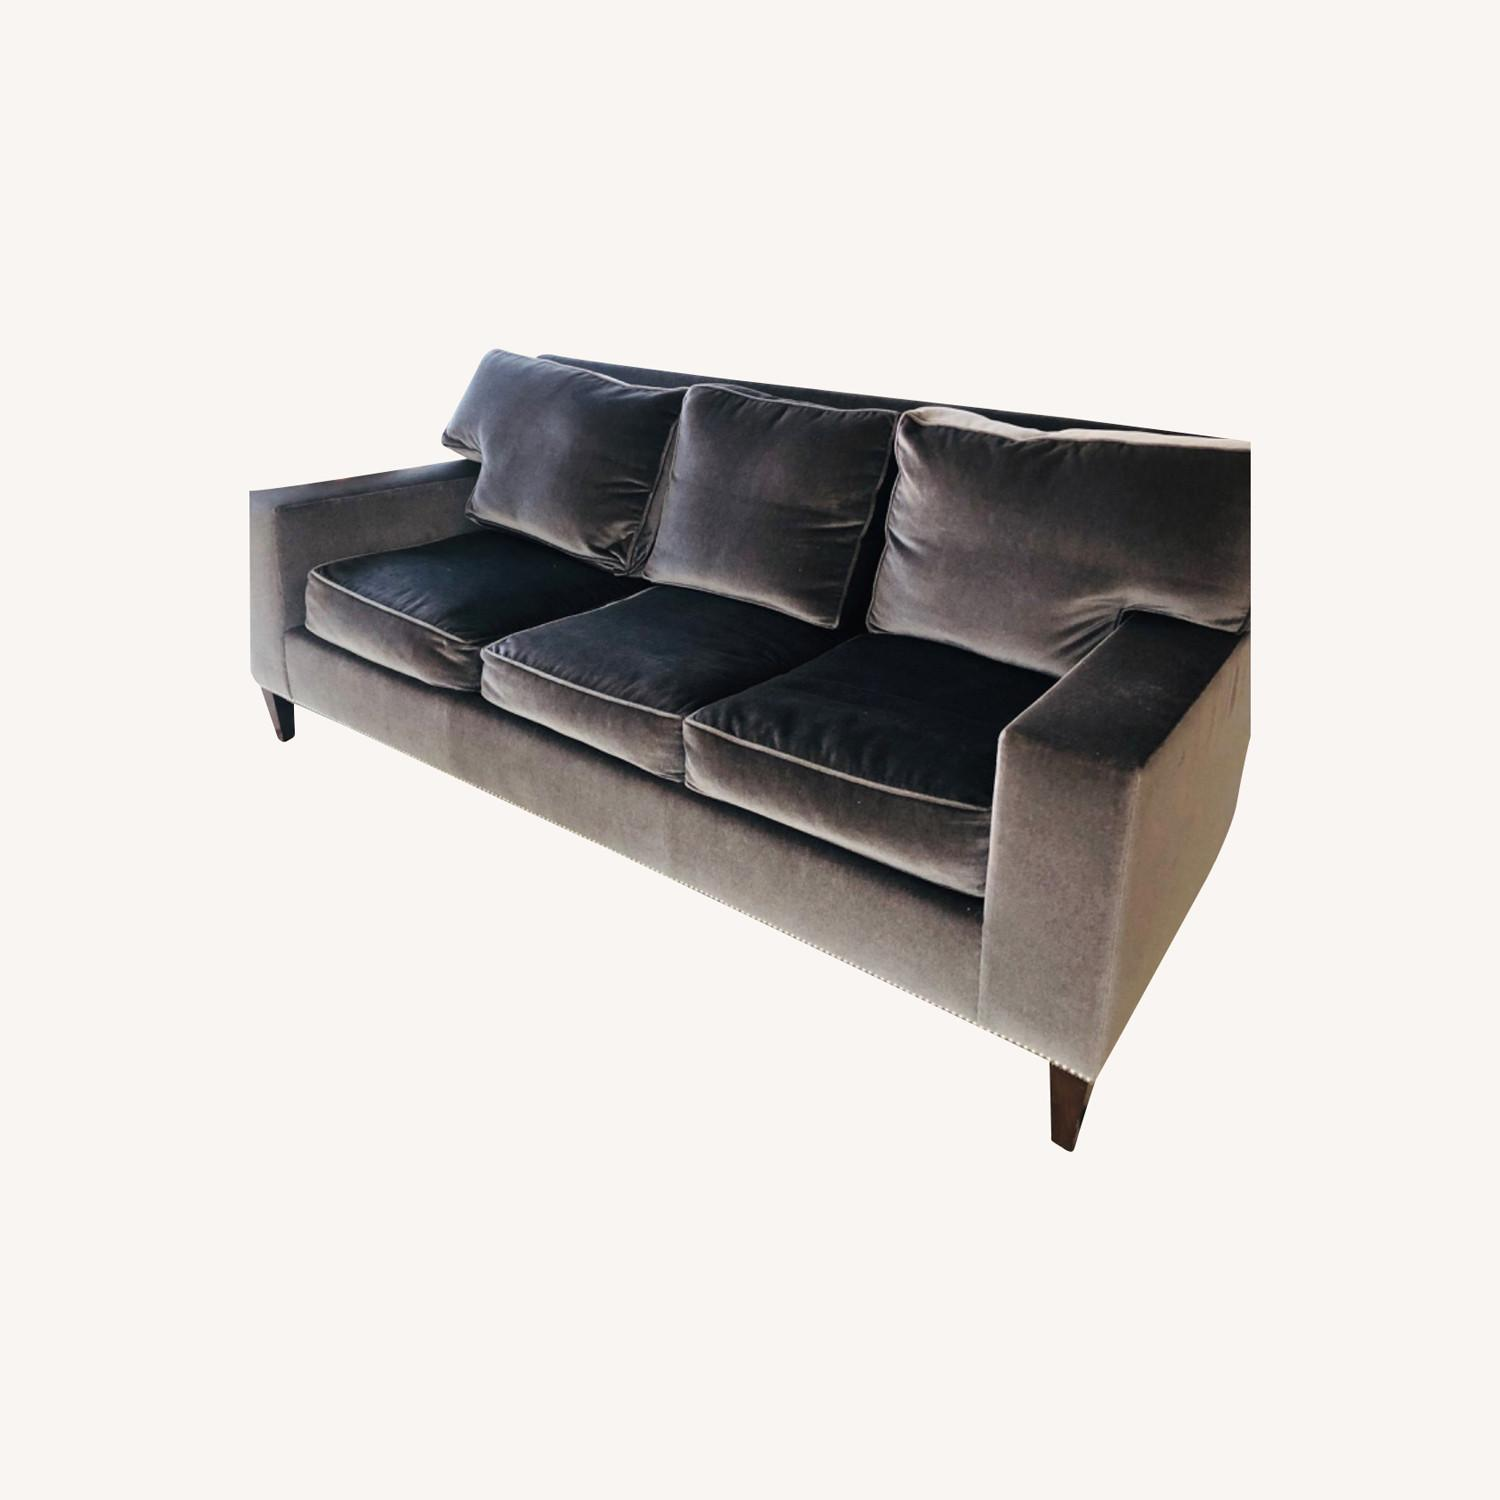 Chic Custom Couch creates by our Designer - image-0